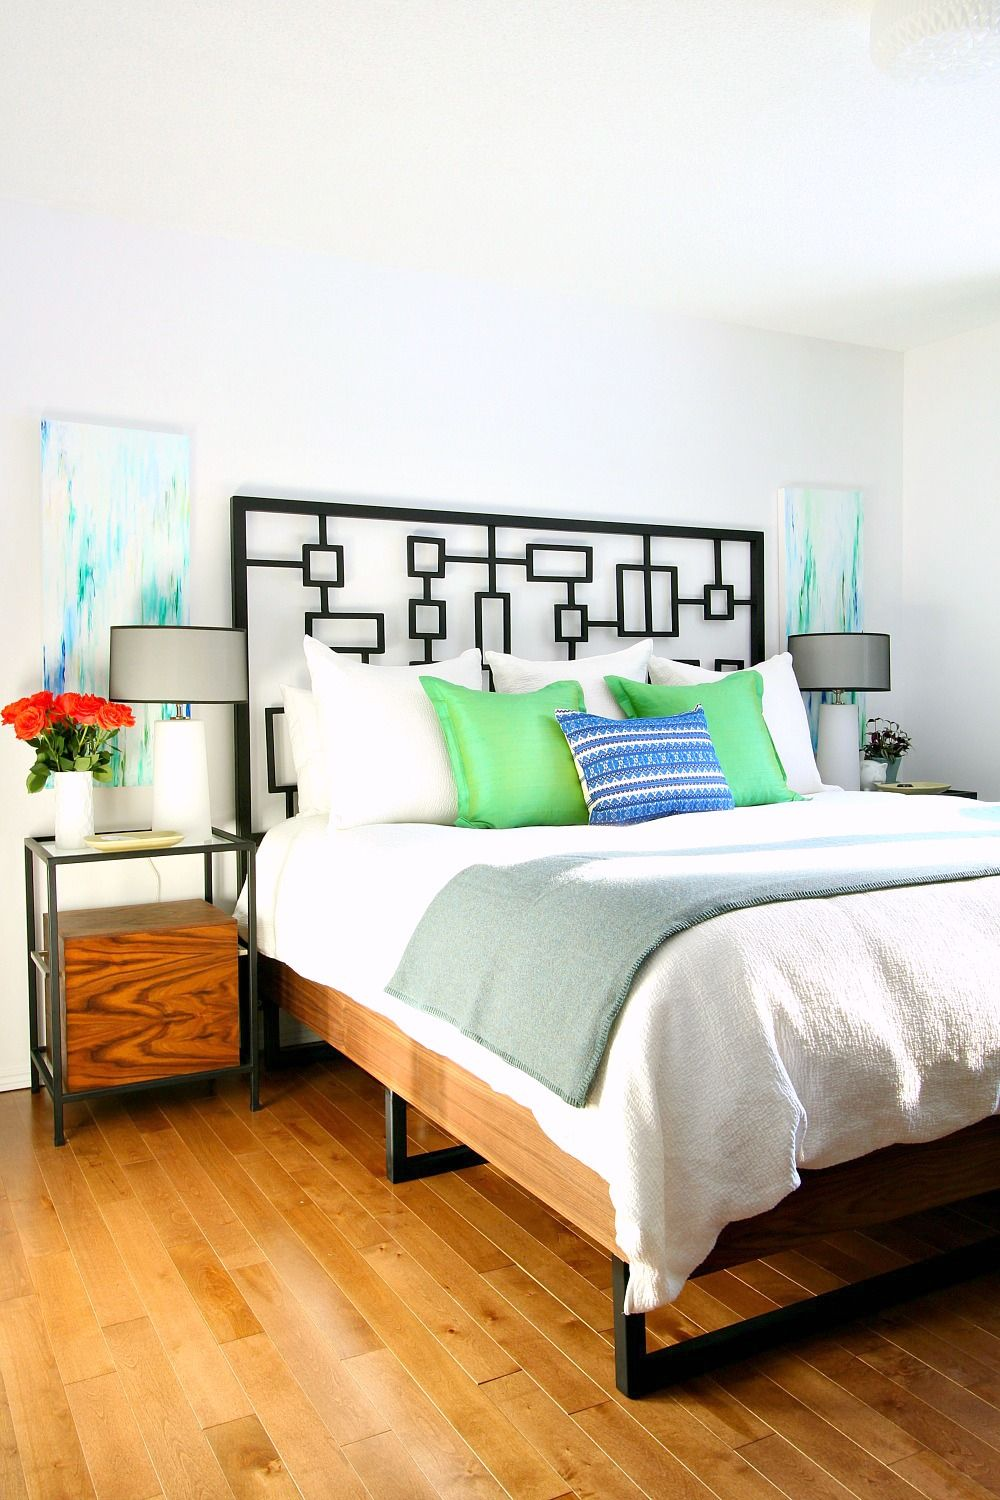 Bedroom Decorating Ideas Pictures